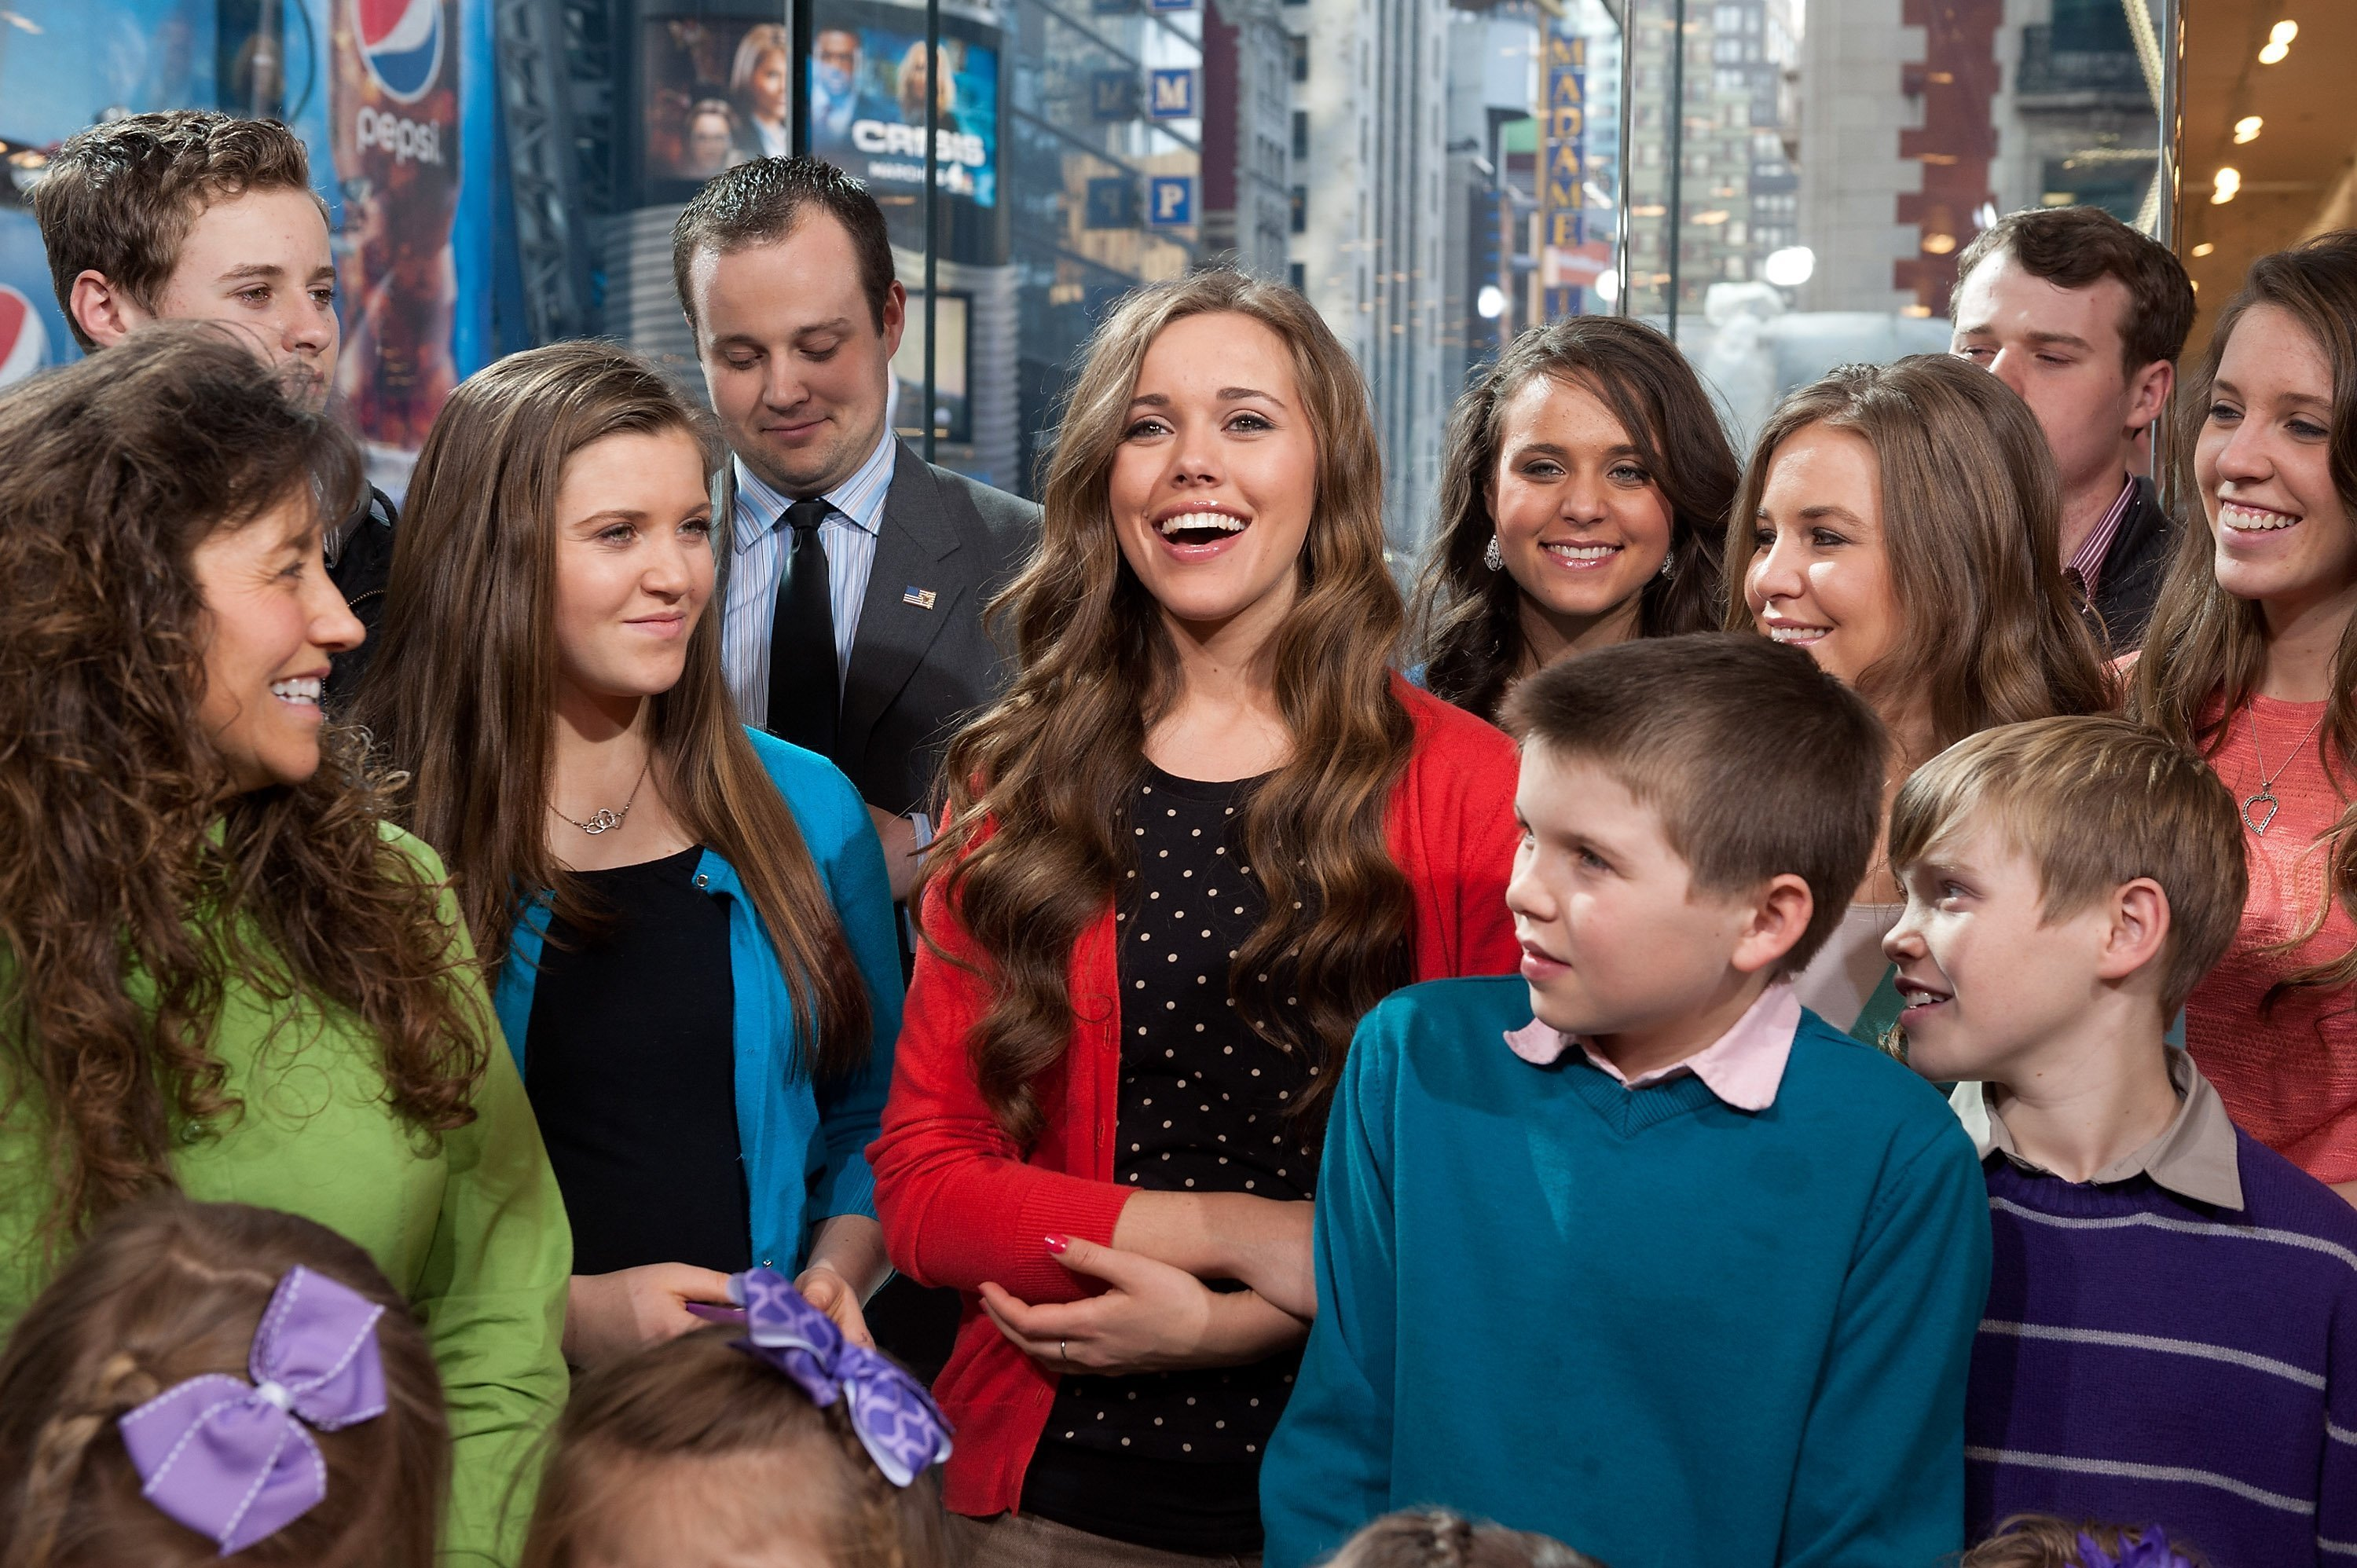 The Duggar family on March 11, 2014 in New York City | Source: Getty Images